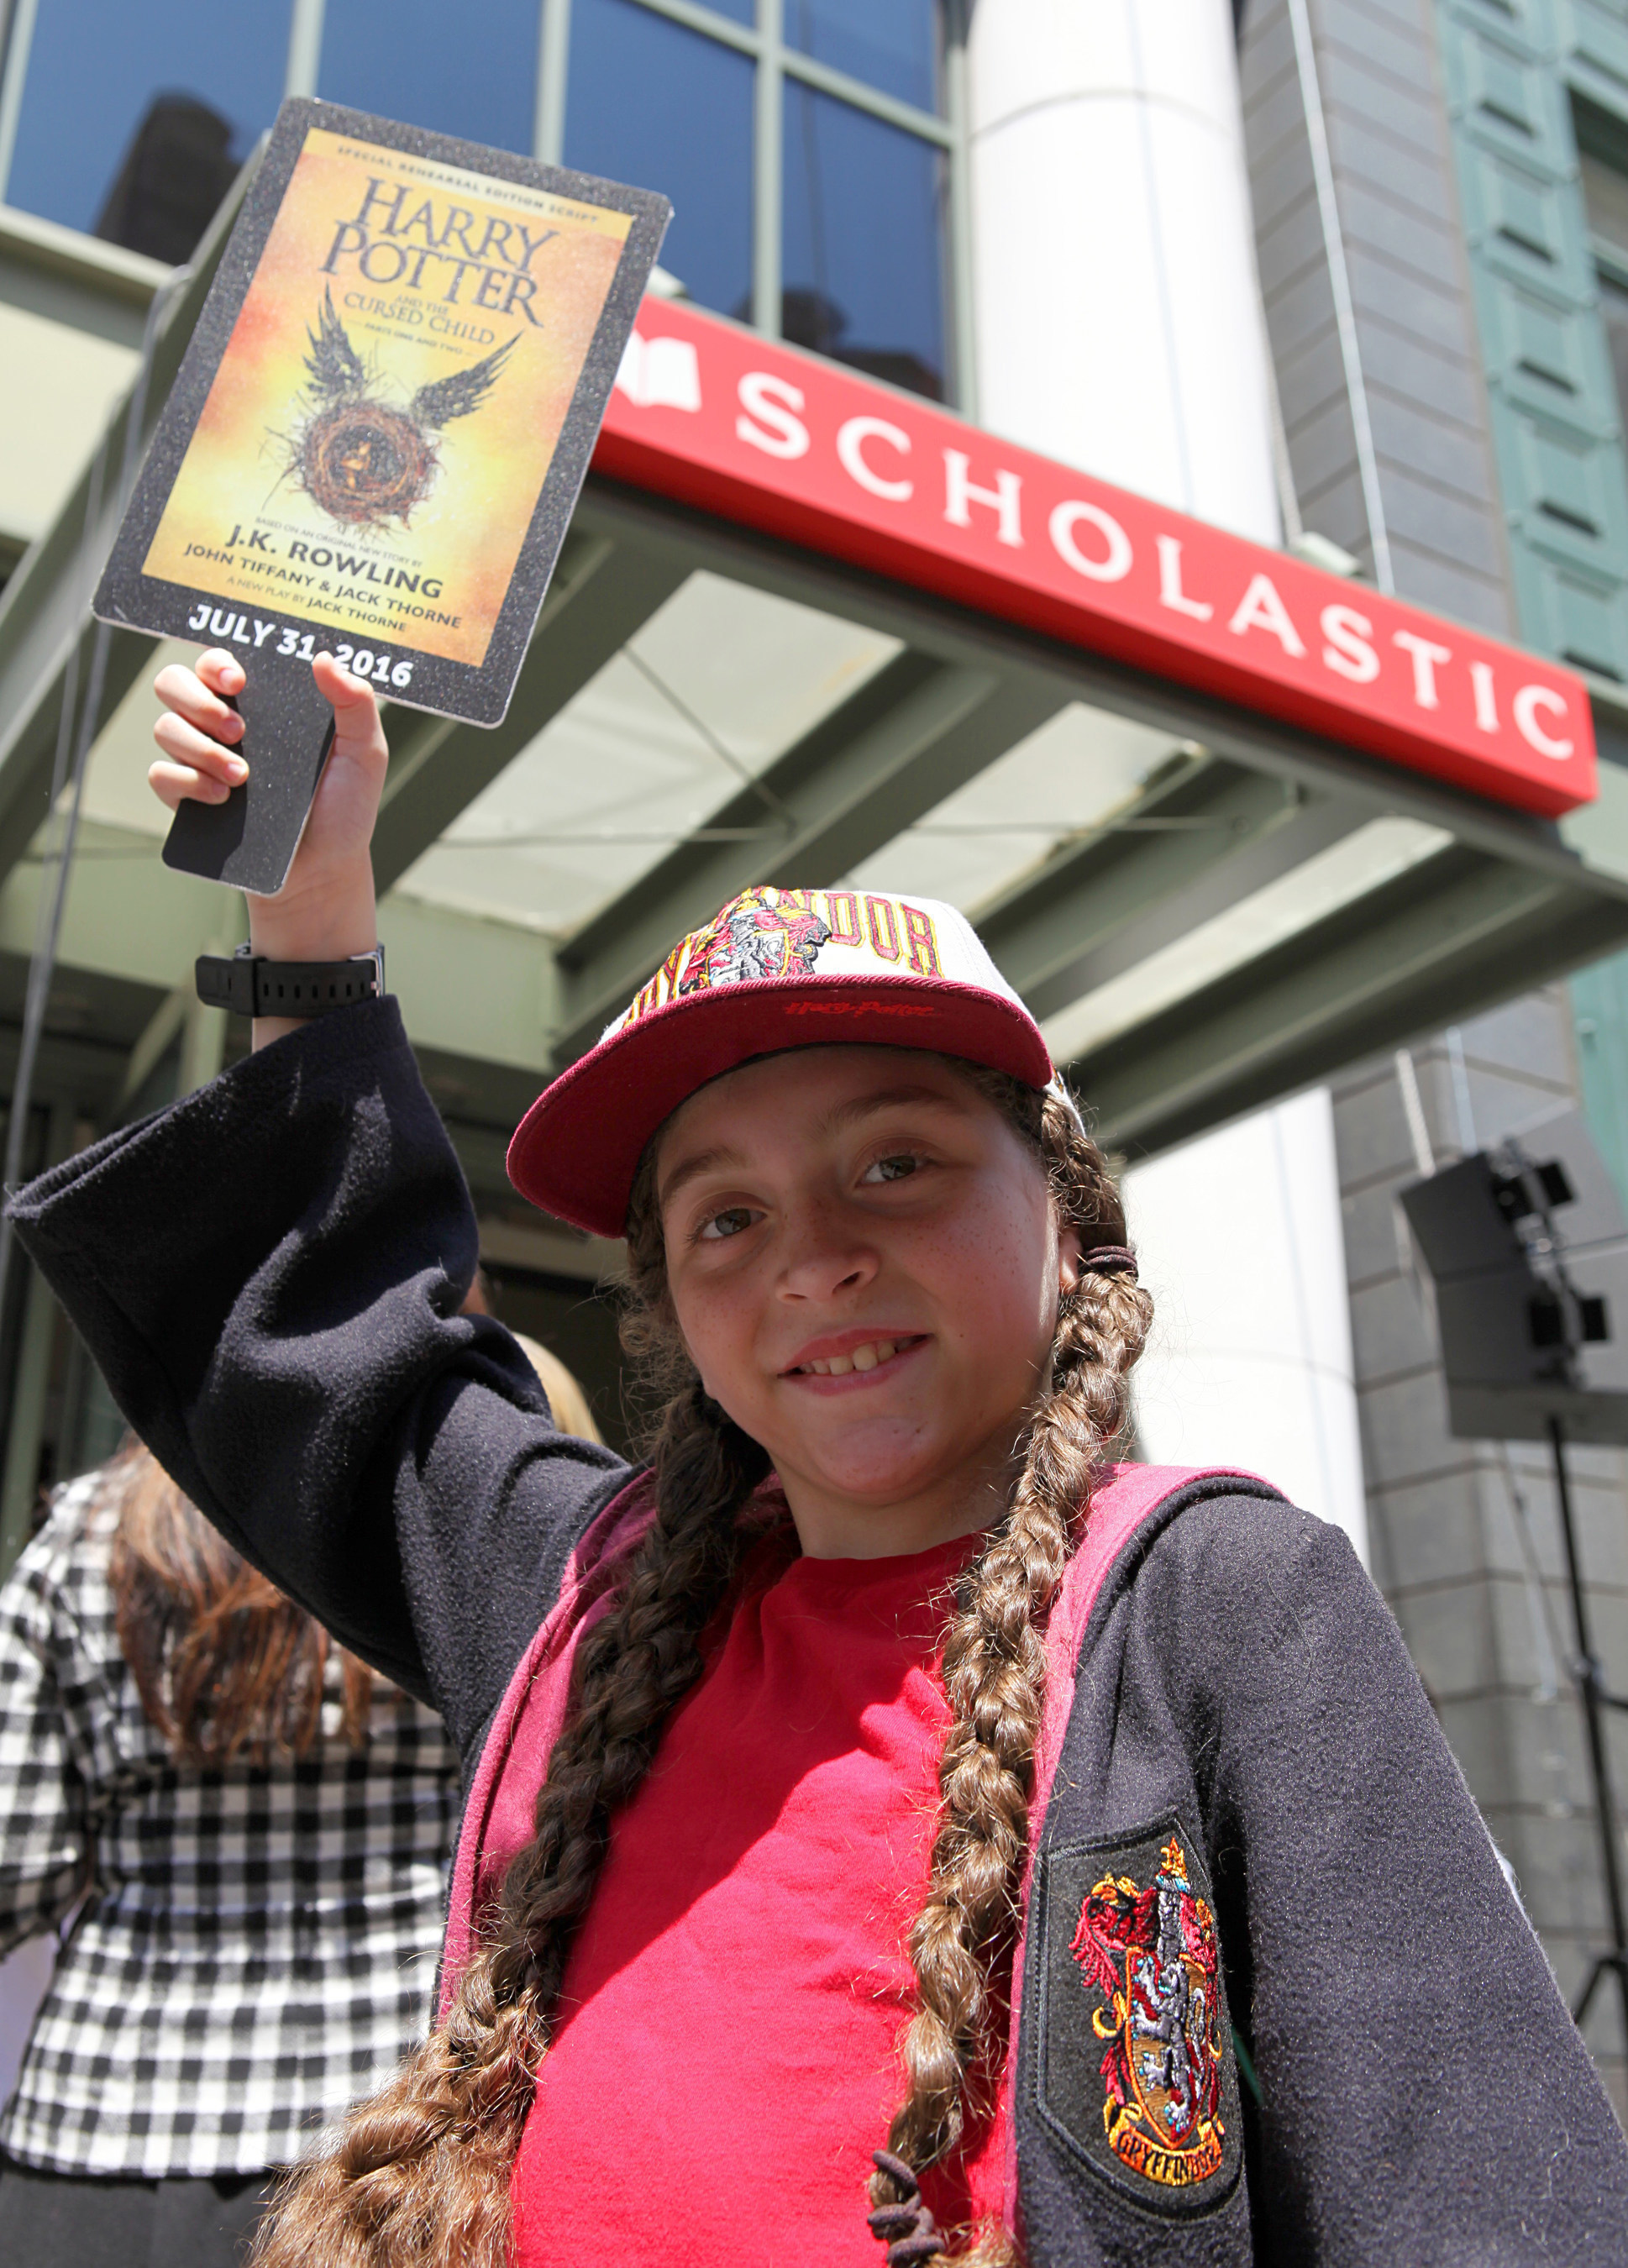 """A Scholastic employee's daughter, 10-year-old Ella, joins the """"Muggle Mob"""" of 300 Harry Potter fans in front of the Scholastic headquarters building in New York City on July 21, celebrating the upcoming release of """"Harry Potter and the Cursed Child Parts One and Two,"""" the eighth story, on July 31, 2016 at 12:01 a.m. ET. Credit: Scholastic"""